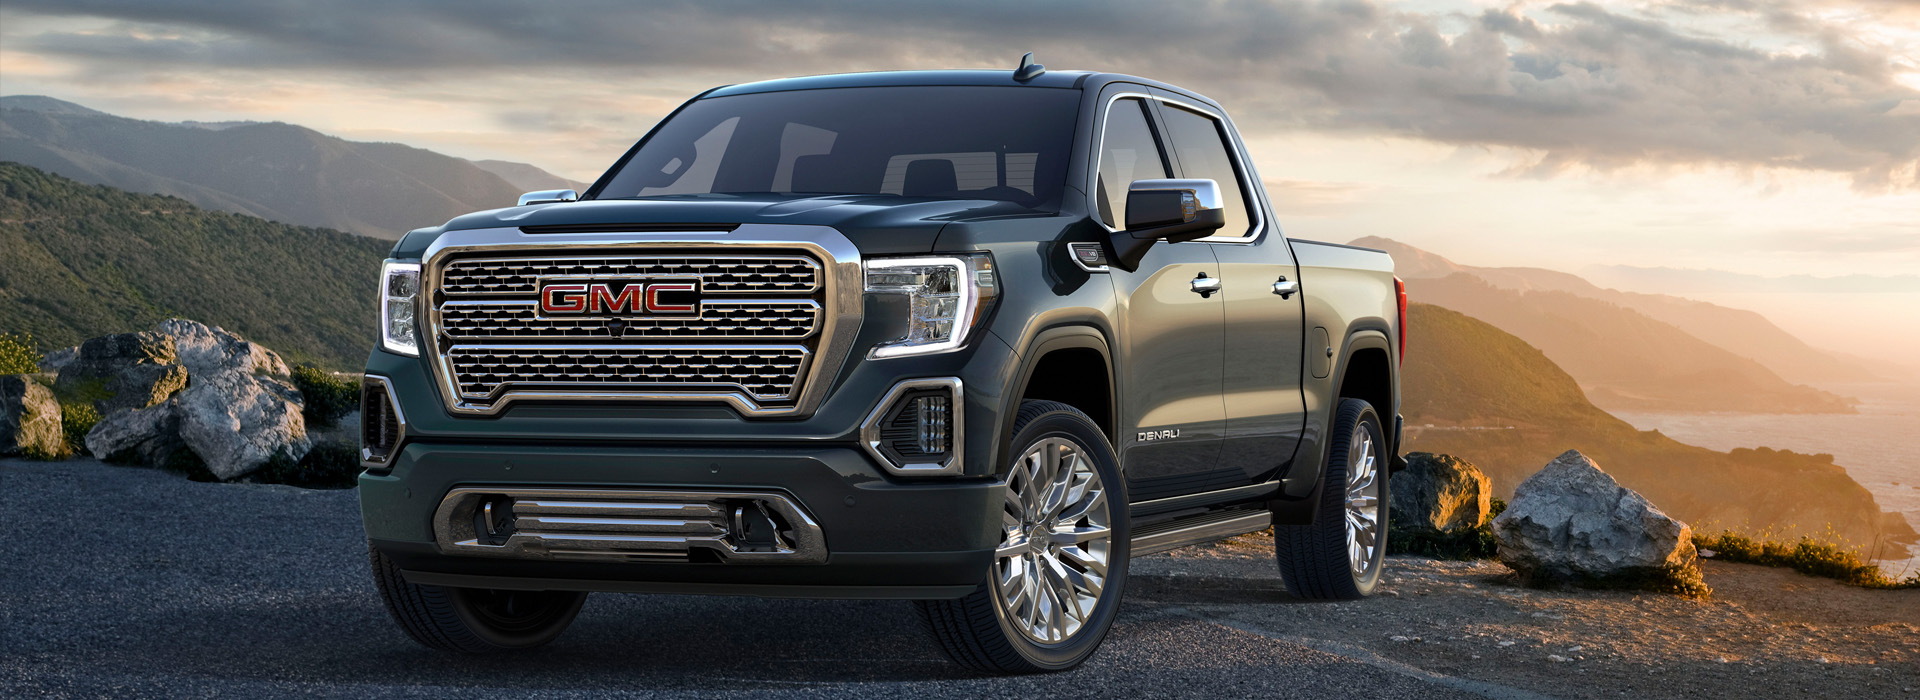 GMC Sierra Denali Exclusive Cars